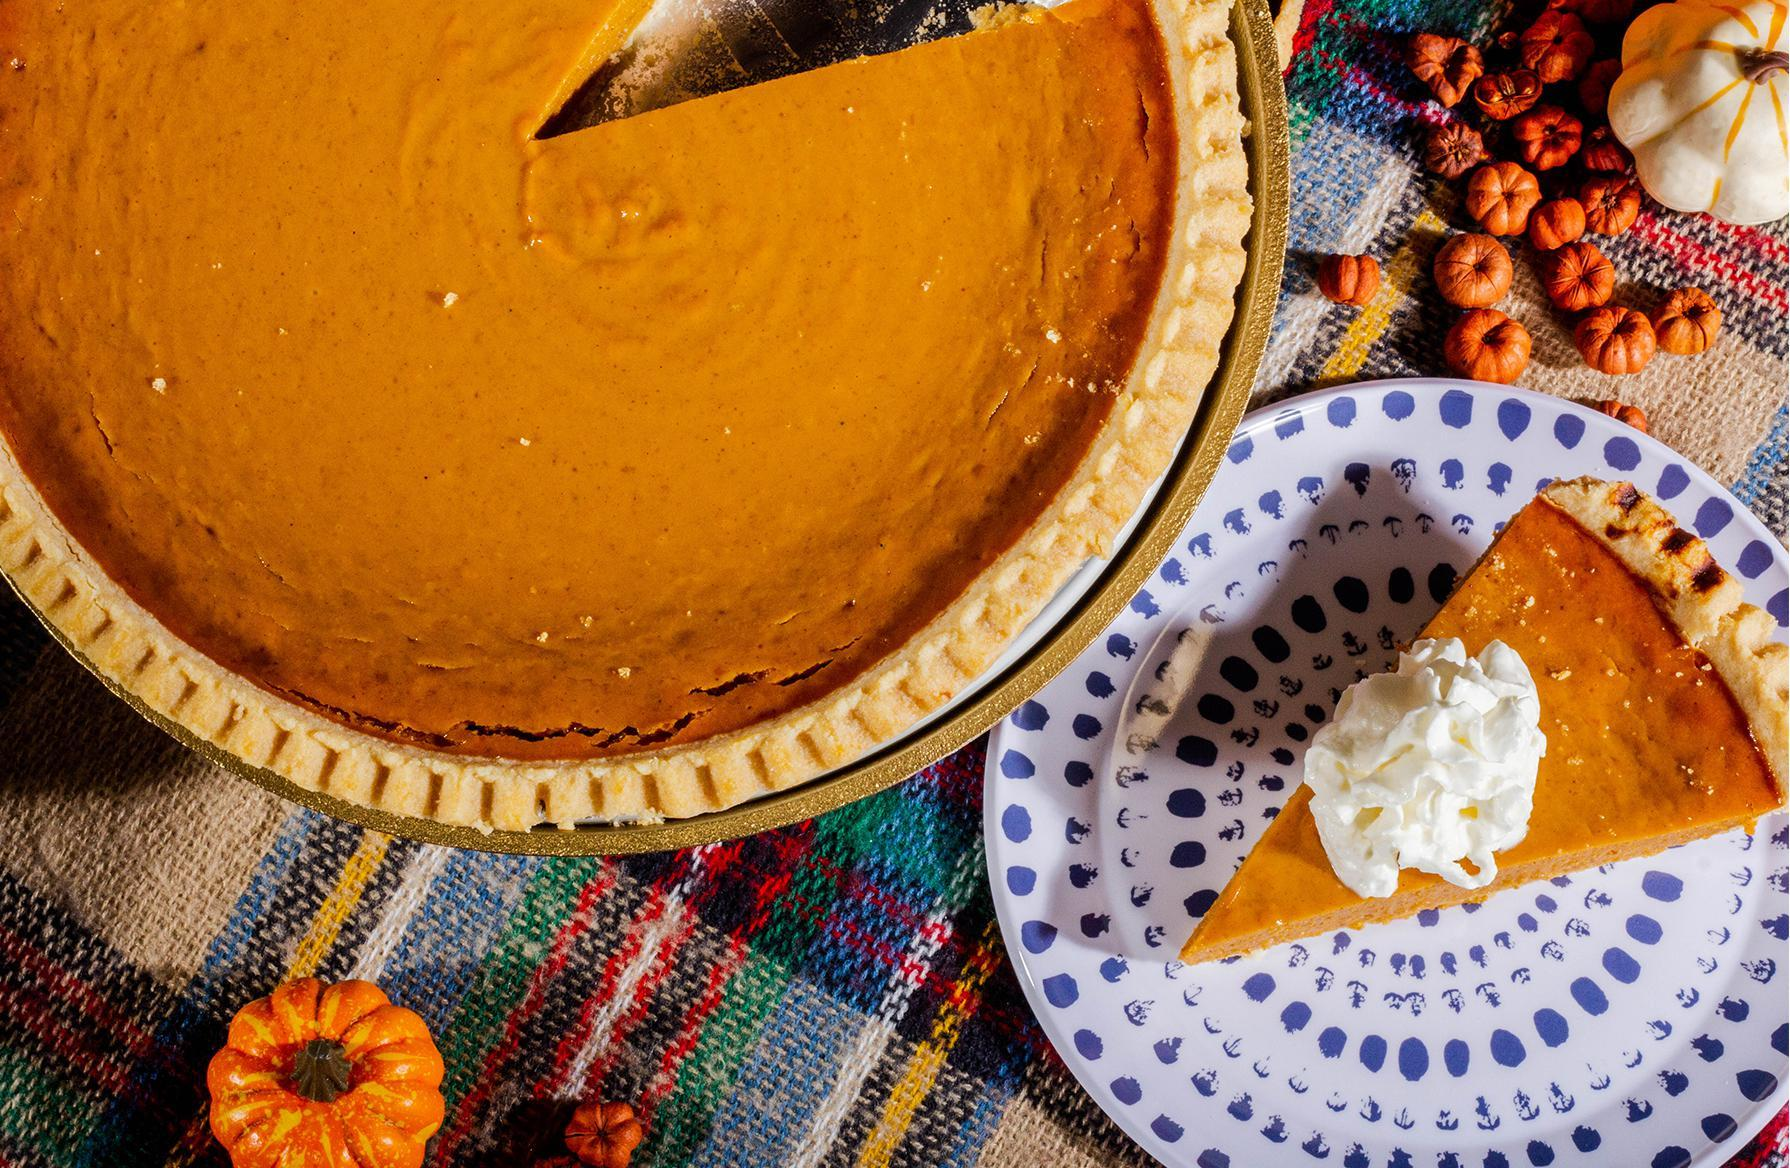 15 Things You Didn't Know About Costco's $5 99 Pumpkin Pie Gallery